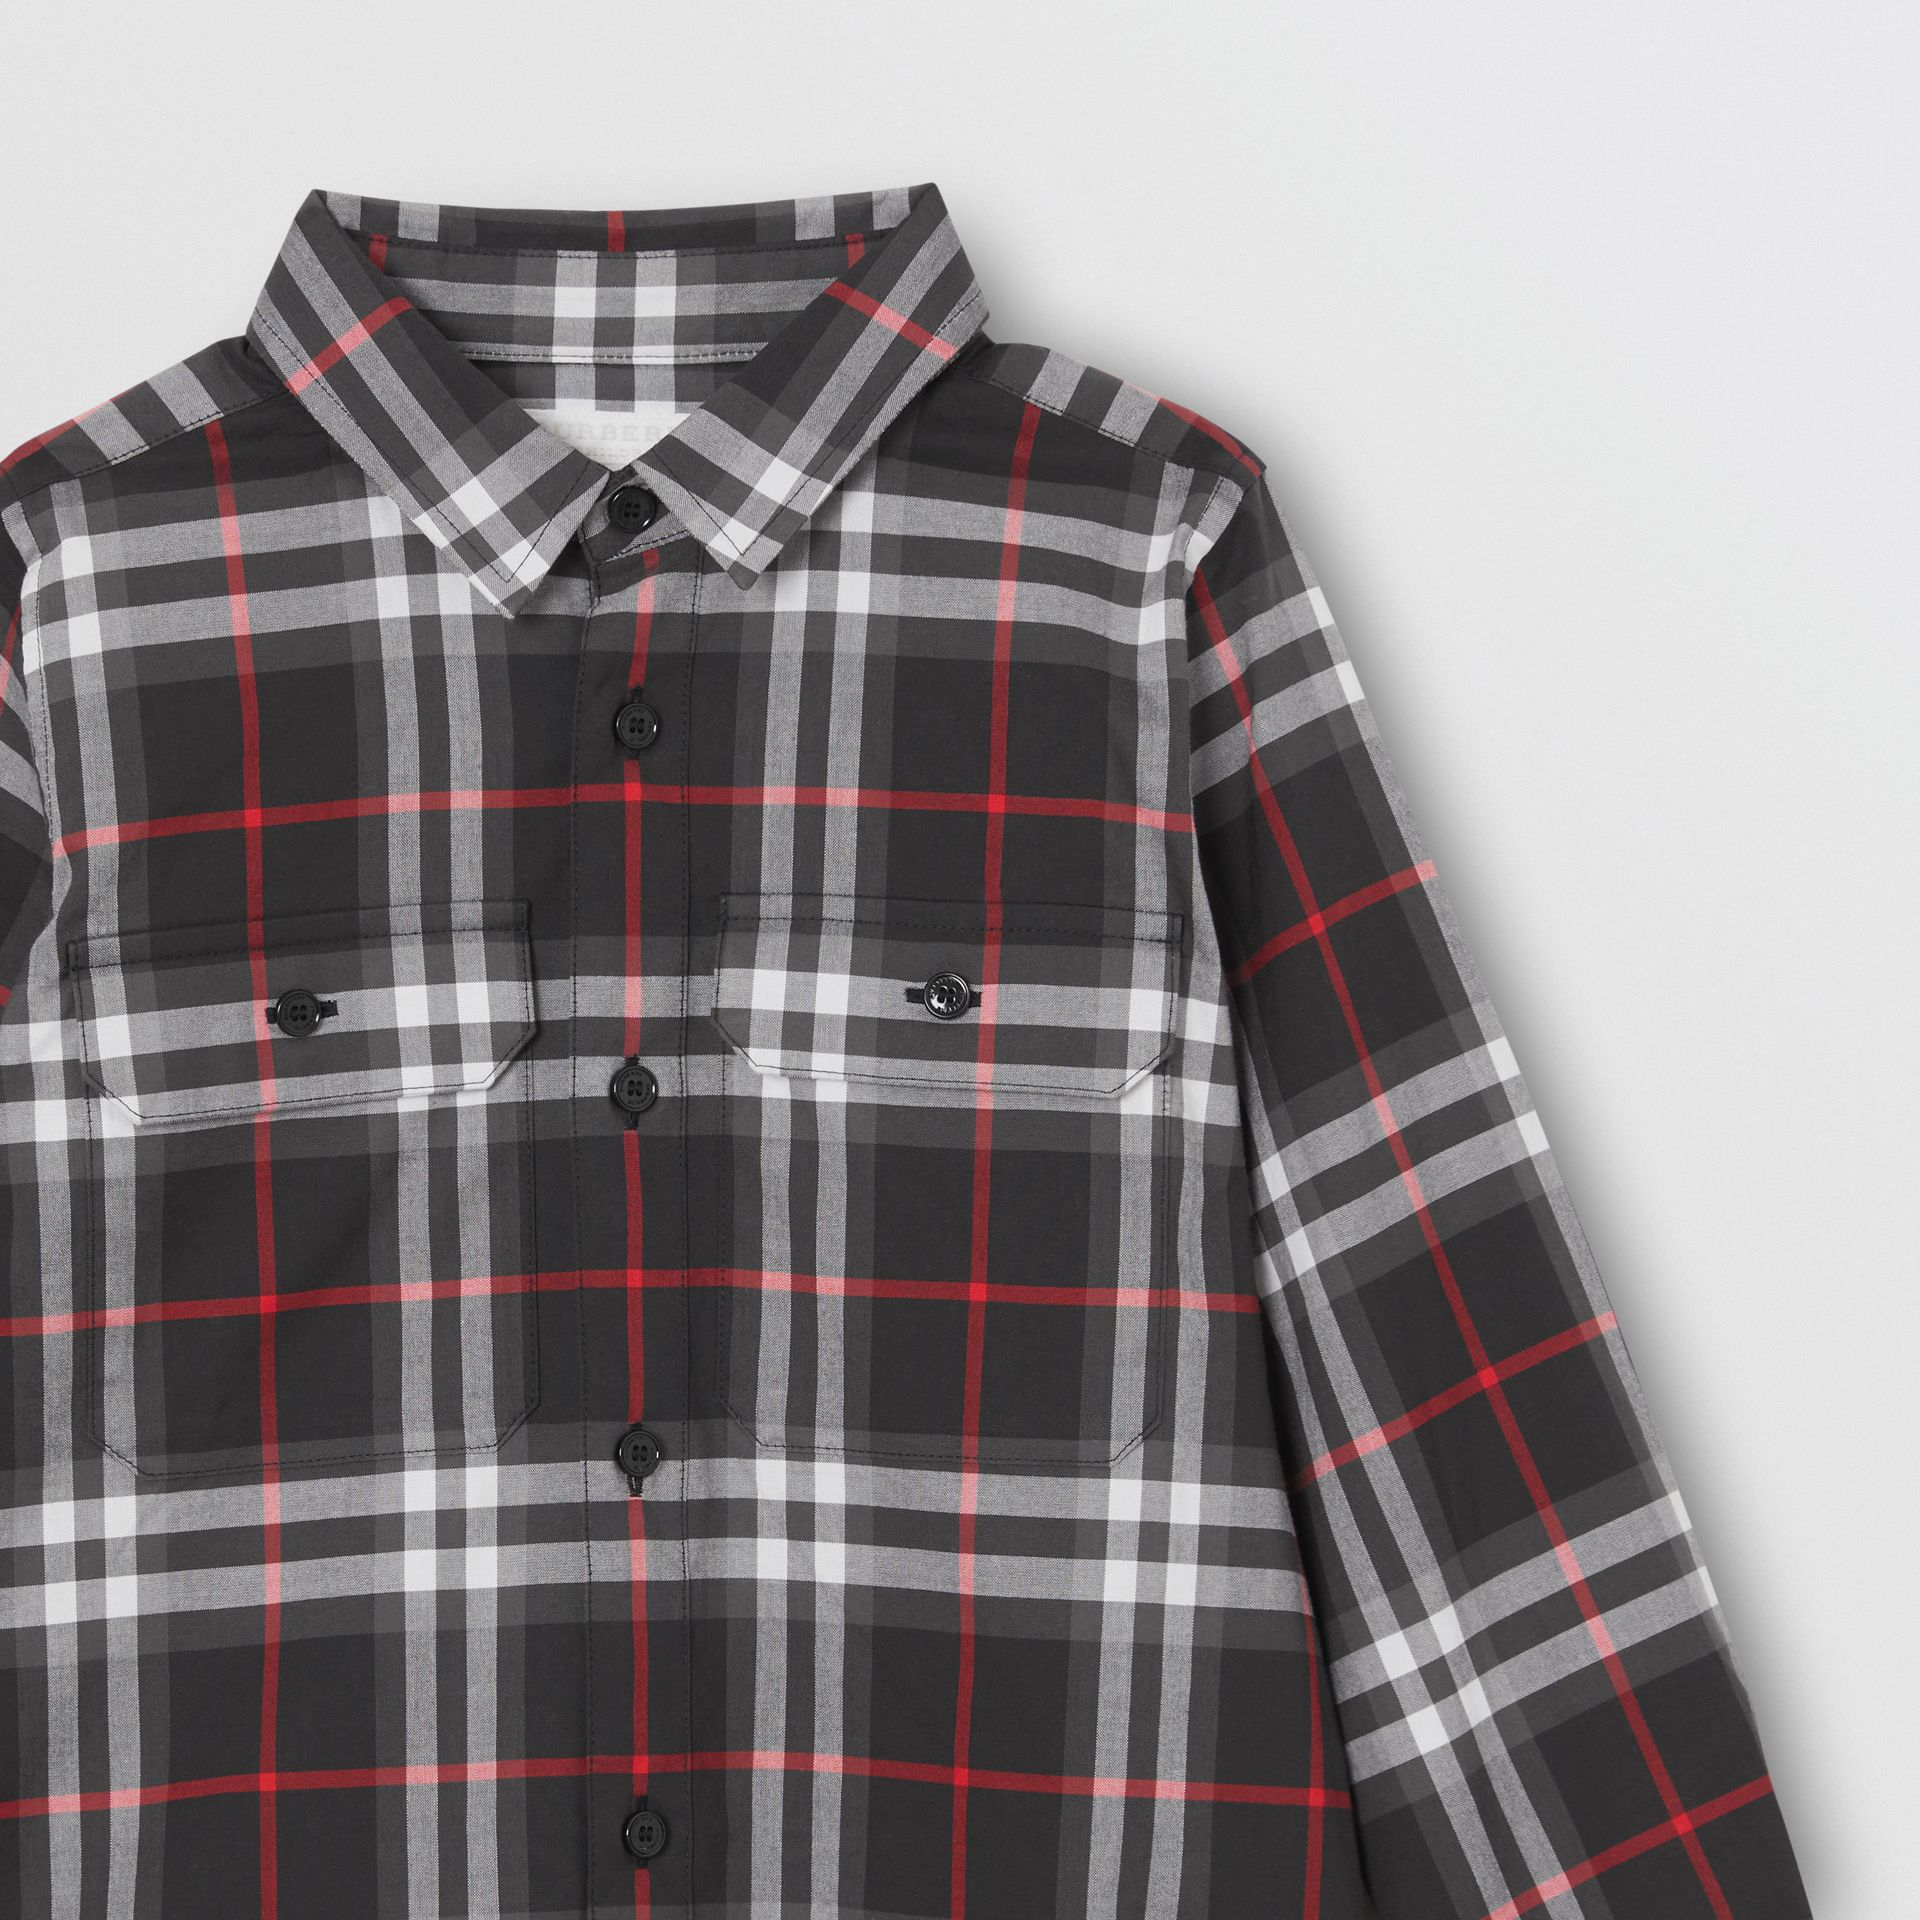 Vintage Check Cotton Shirt in Black | Burberry - gallery image 4